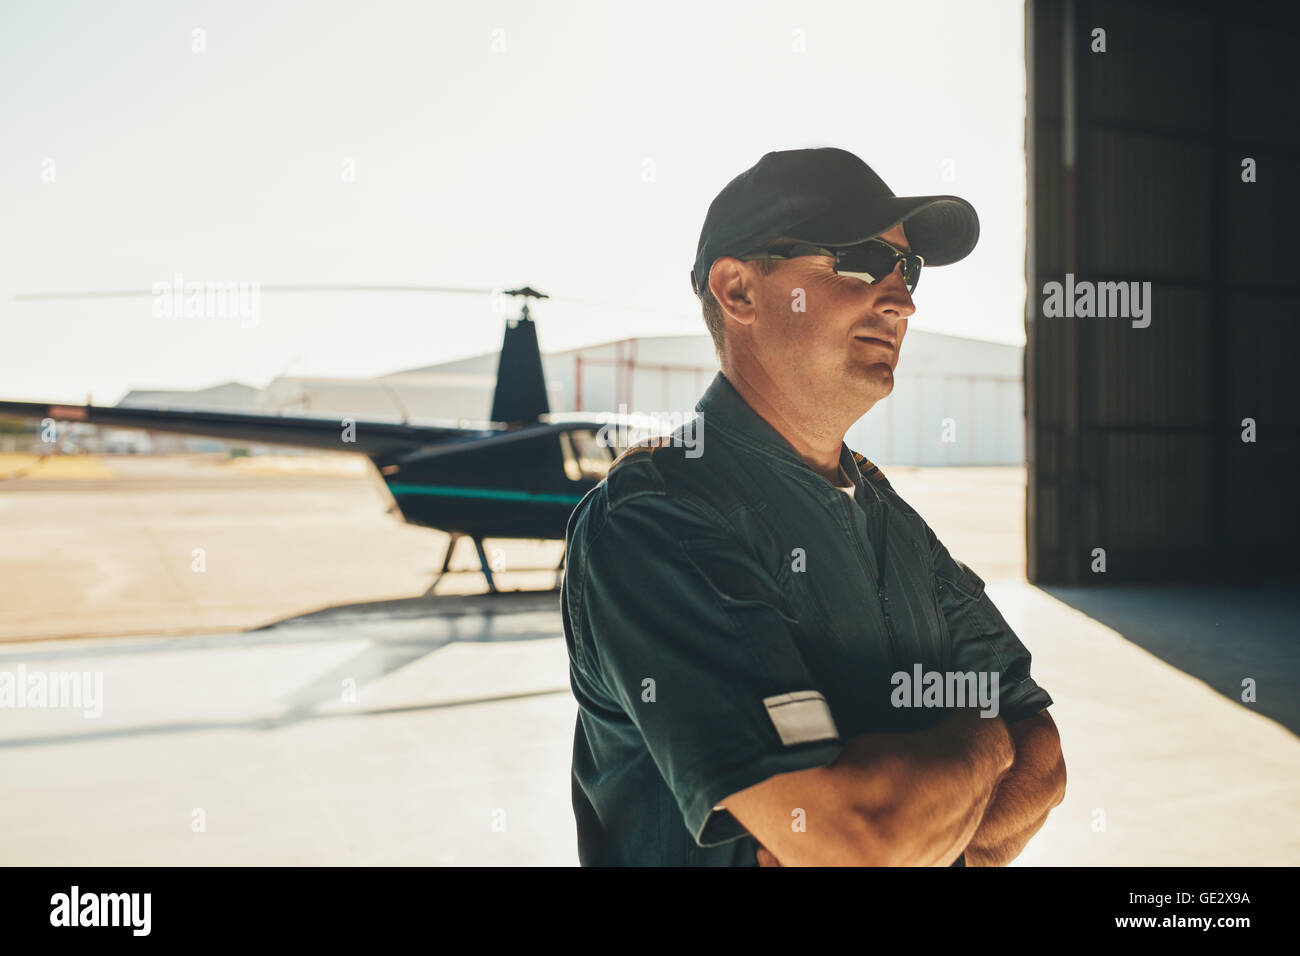 Portrait of helicopter pilot in uniform standing with his arms crossed and looking away with a helicopter in background - Stock Image